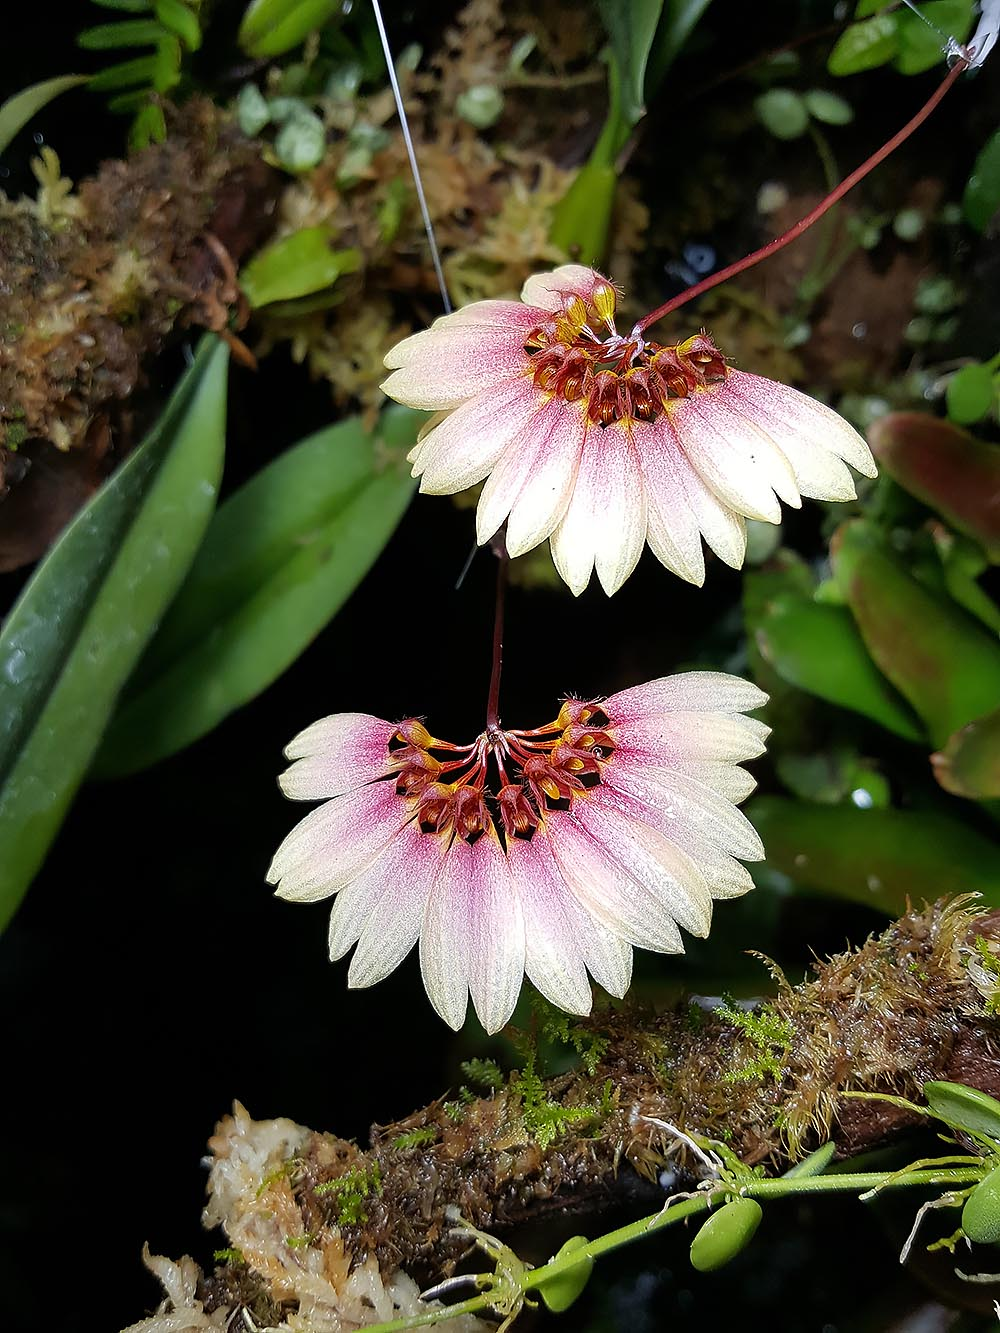 Bulbophyllum Daisy Chain, a primary hybrid between the species B. makyoanum x B. cummingii.